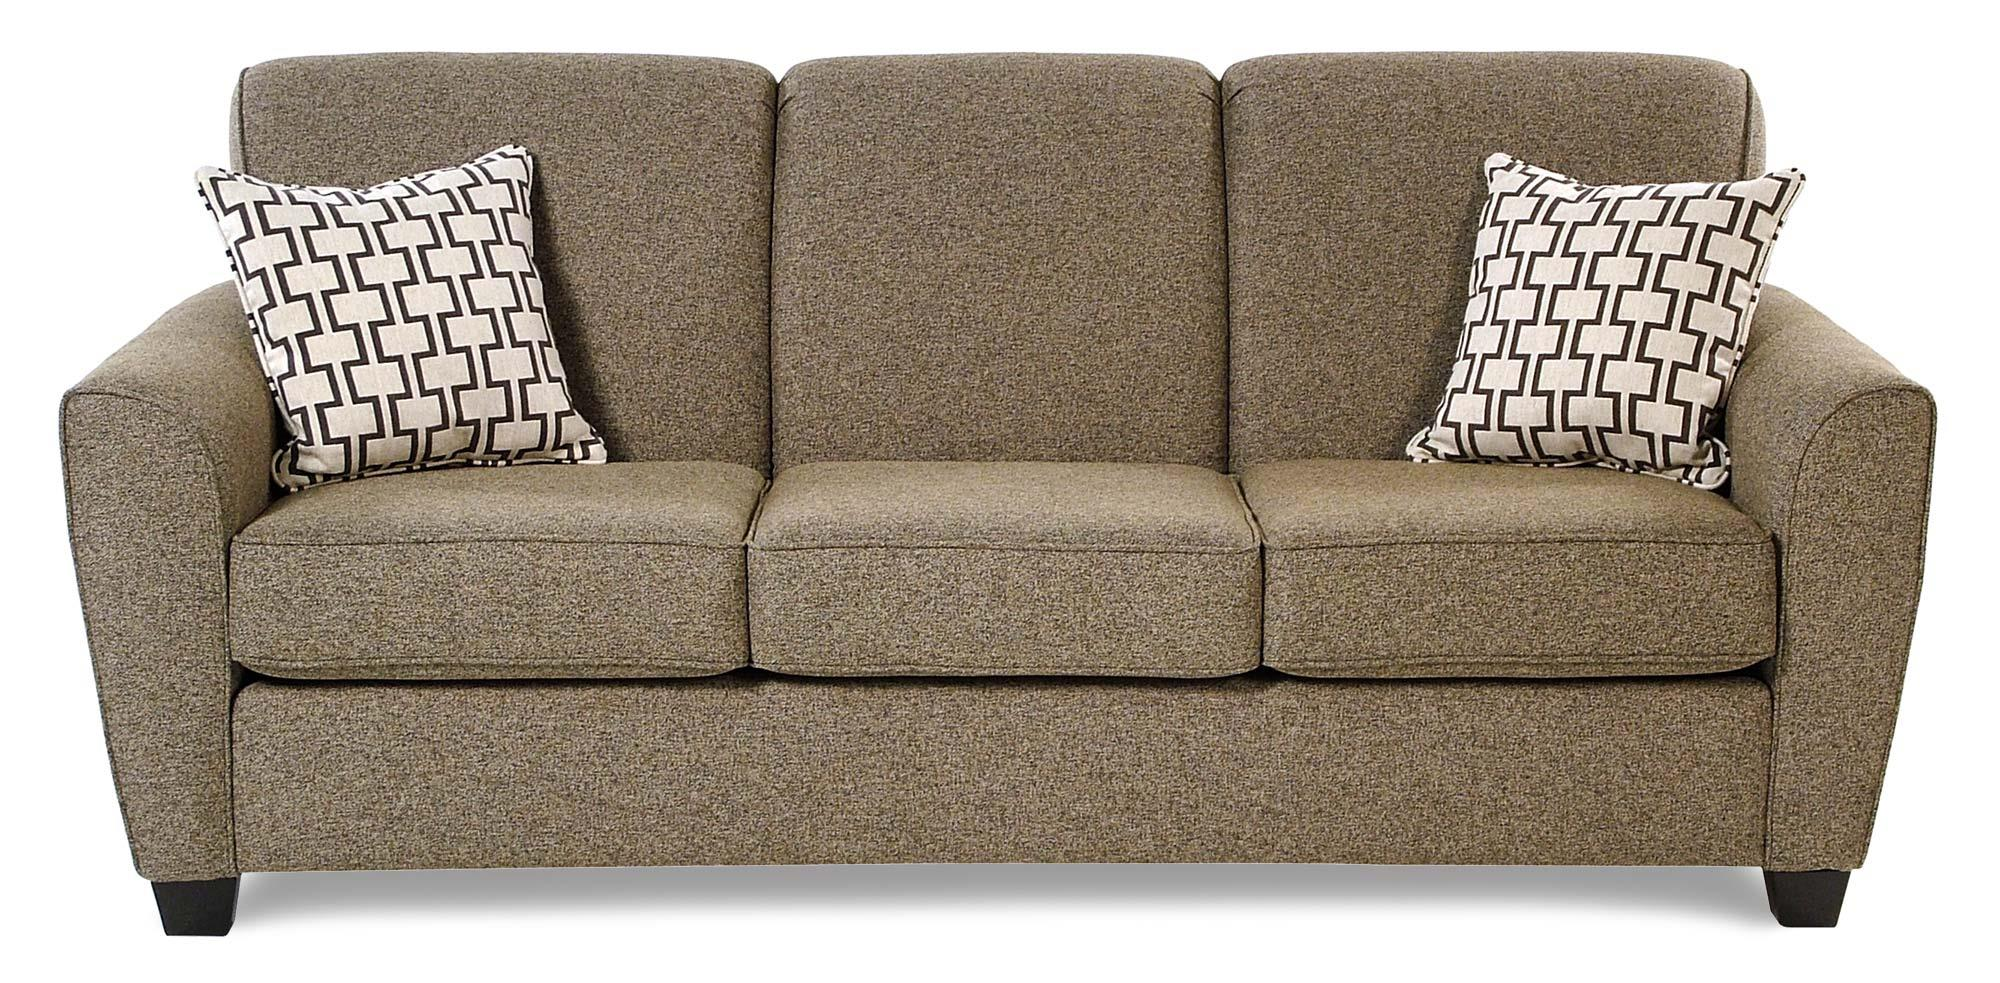 Decor-Rest Balance Transitional Sofa w/ Flared Arms - Item Number: 2404-SF-ESP